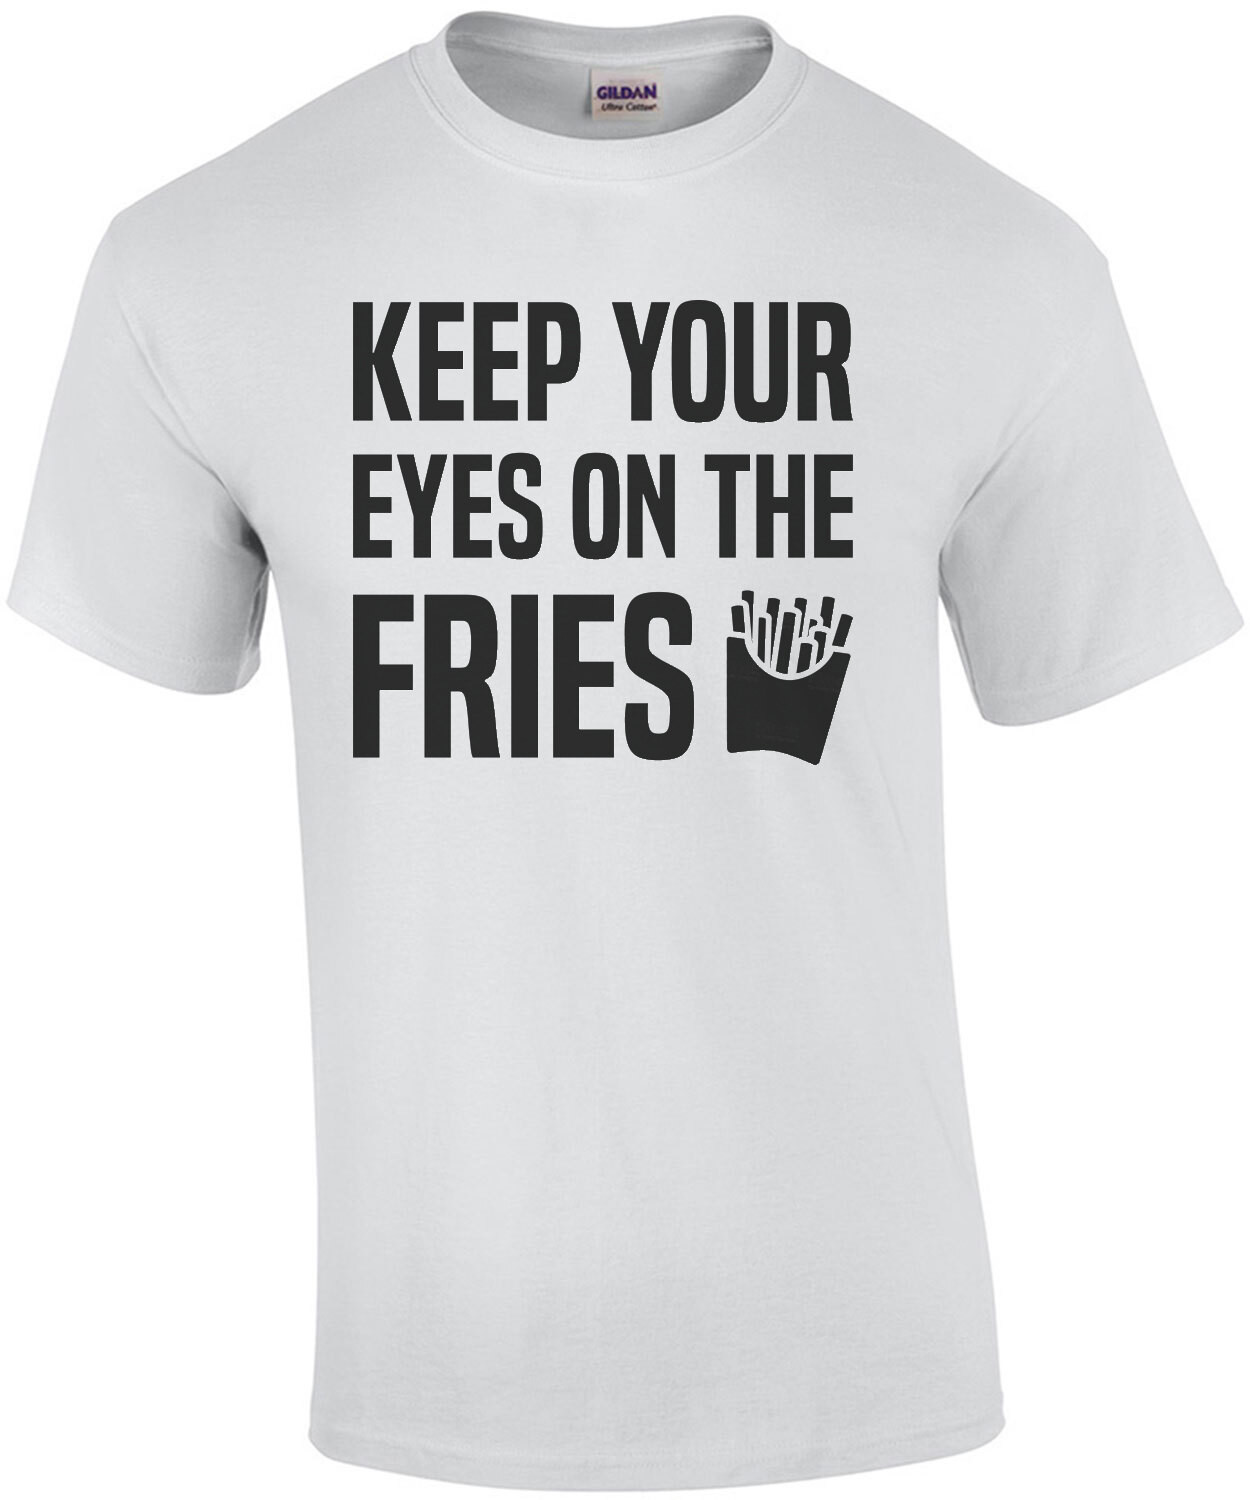 Keep your eyes on the fries - funny t-shirt